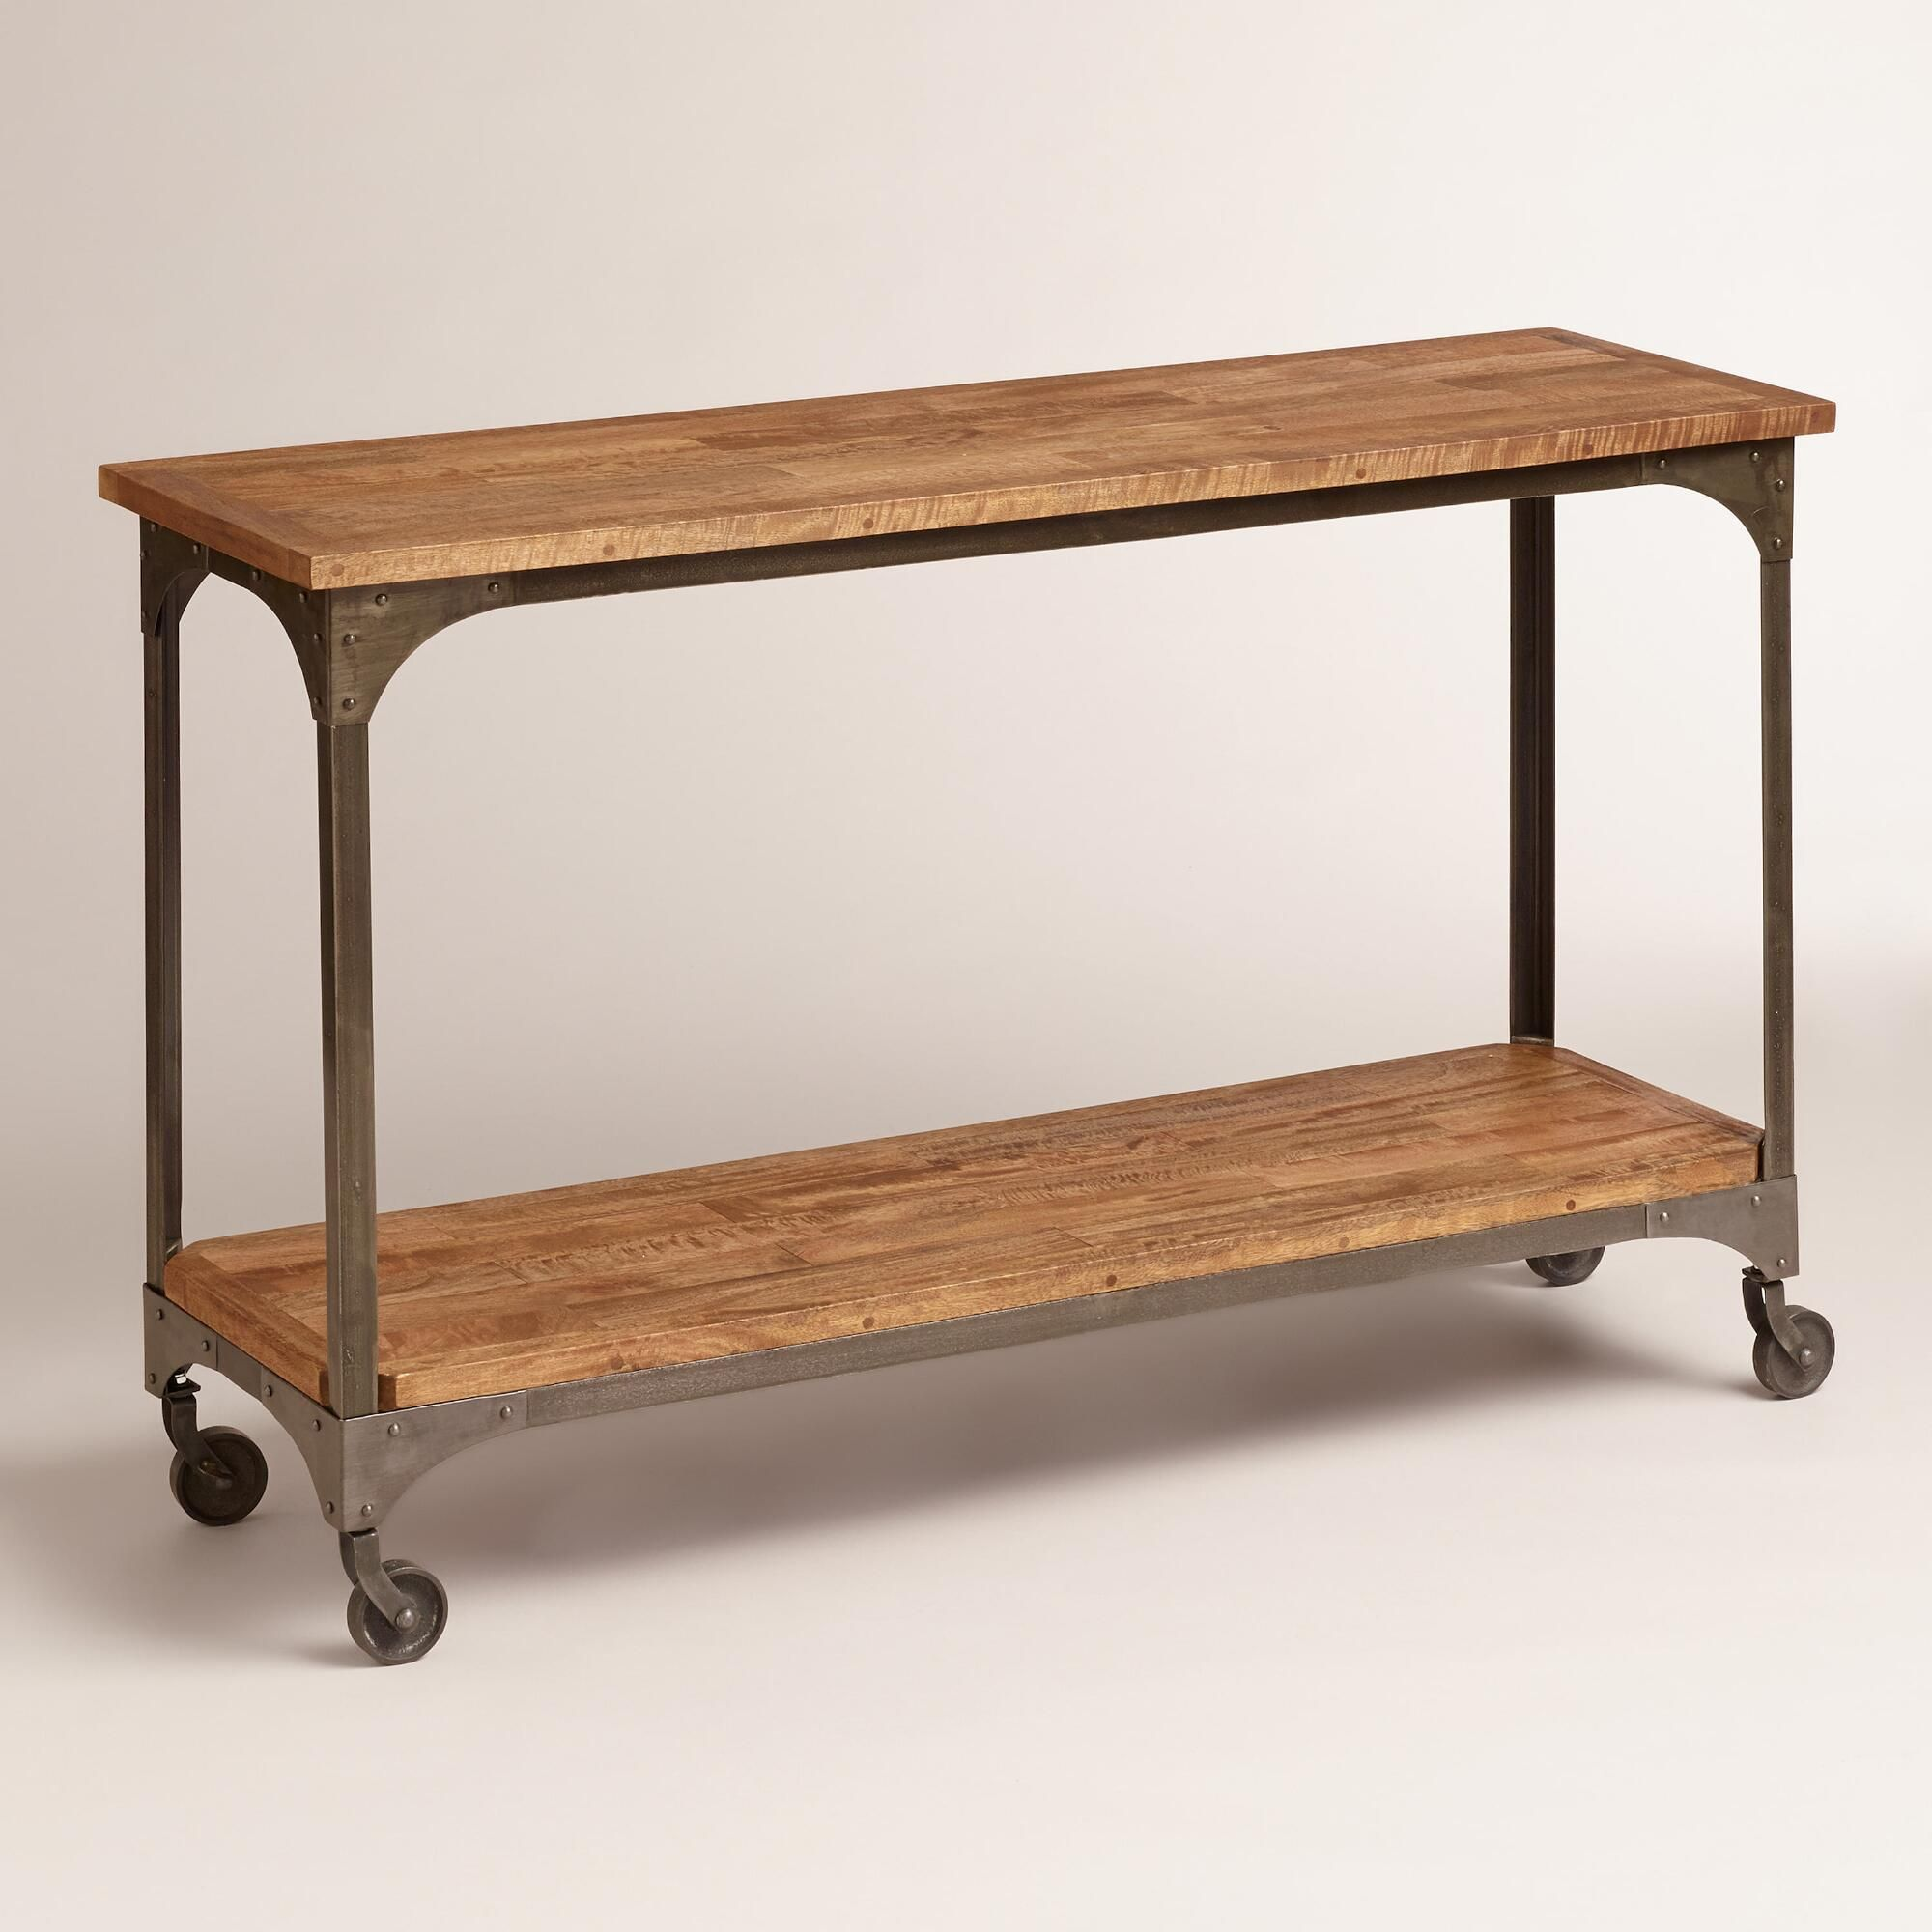 Wood And Metal Aiden Console Table Rustic Industrial And